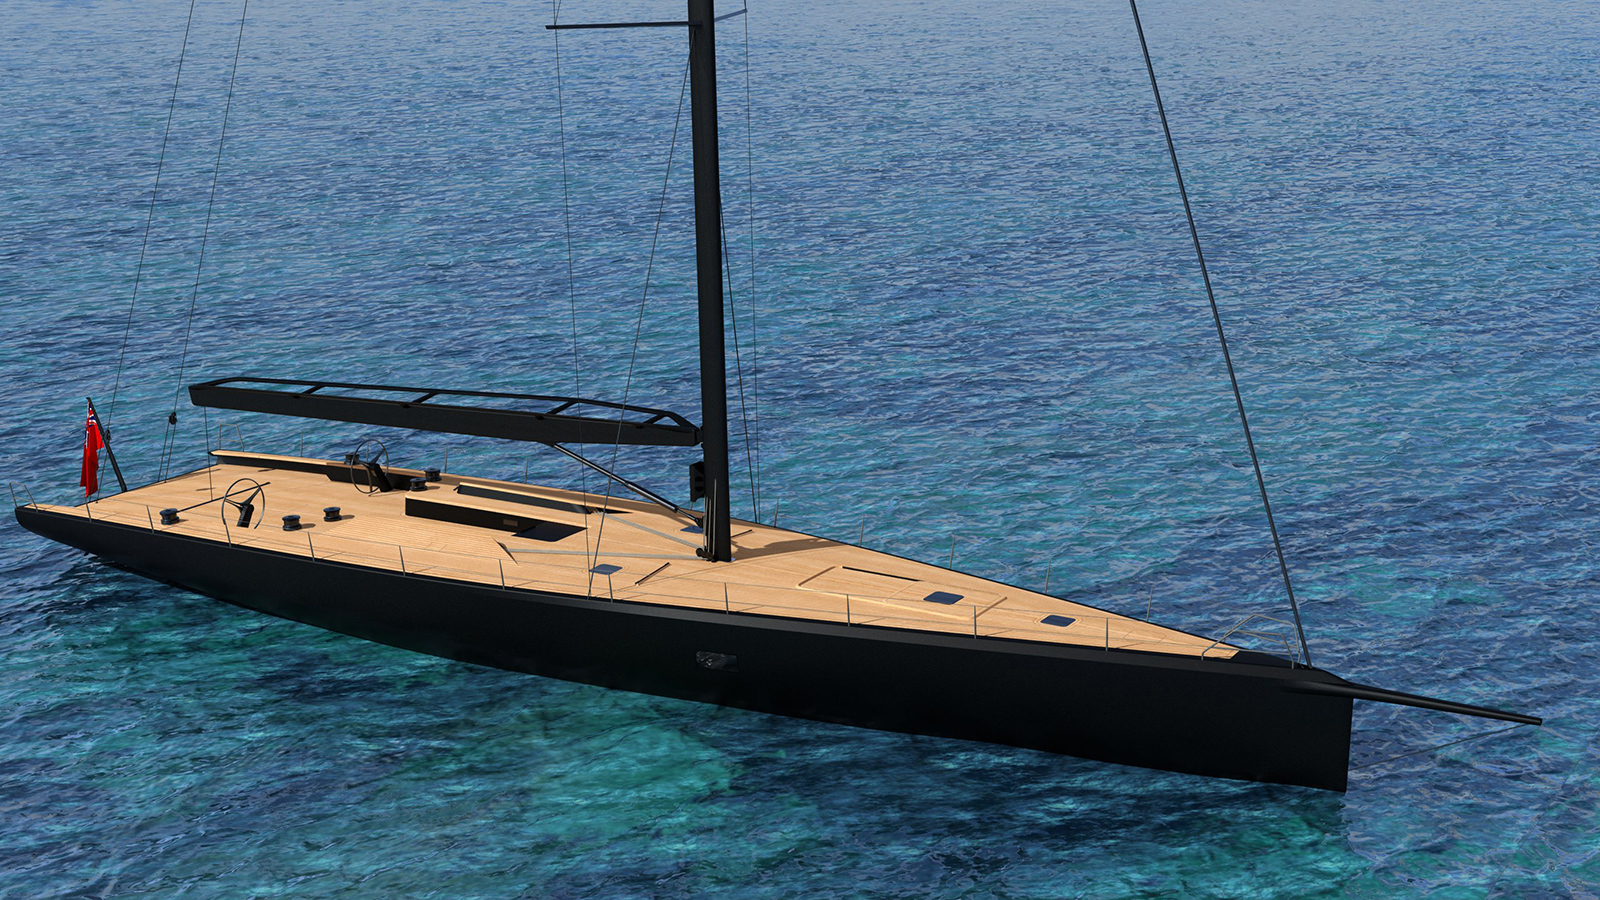 the-wally-93-sailing-yacht-with-sails-down